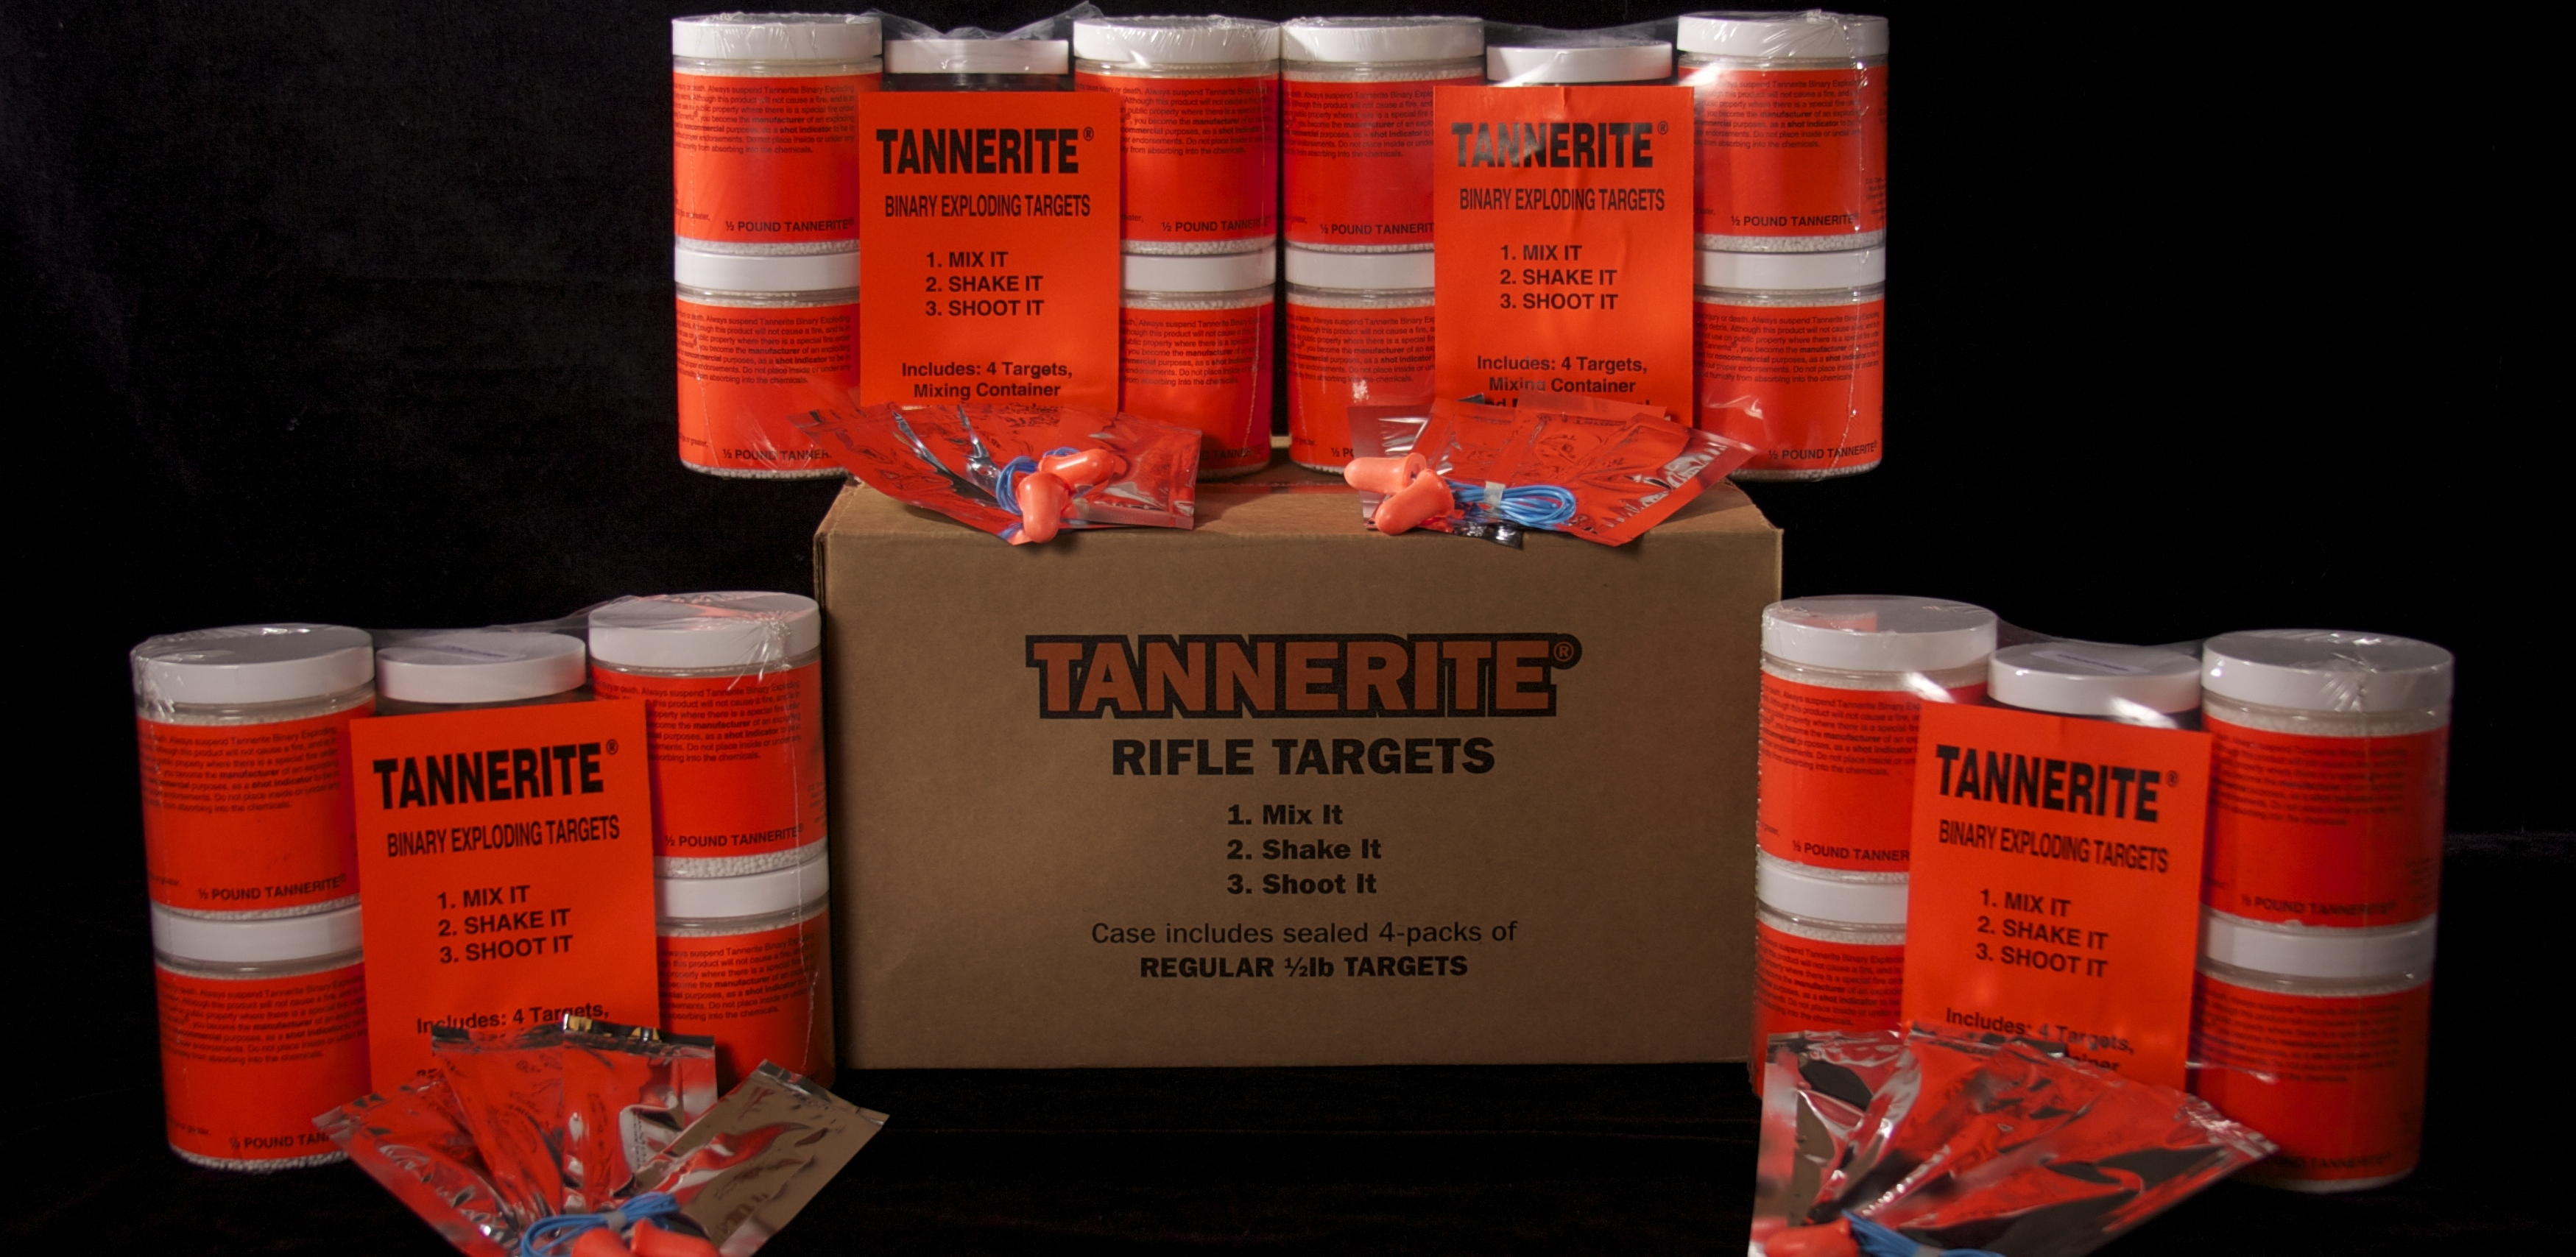 Law Enforcement to Crack Down on Tannerite Use